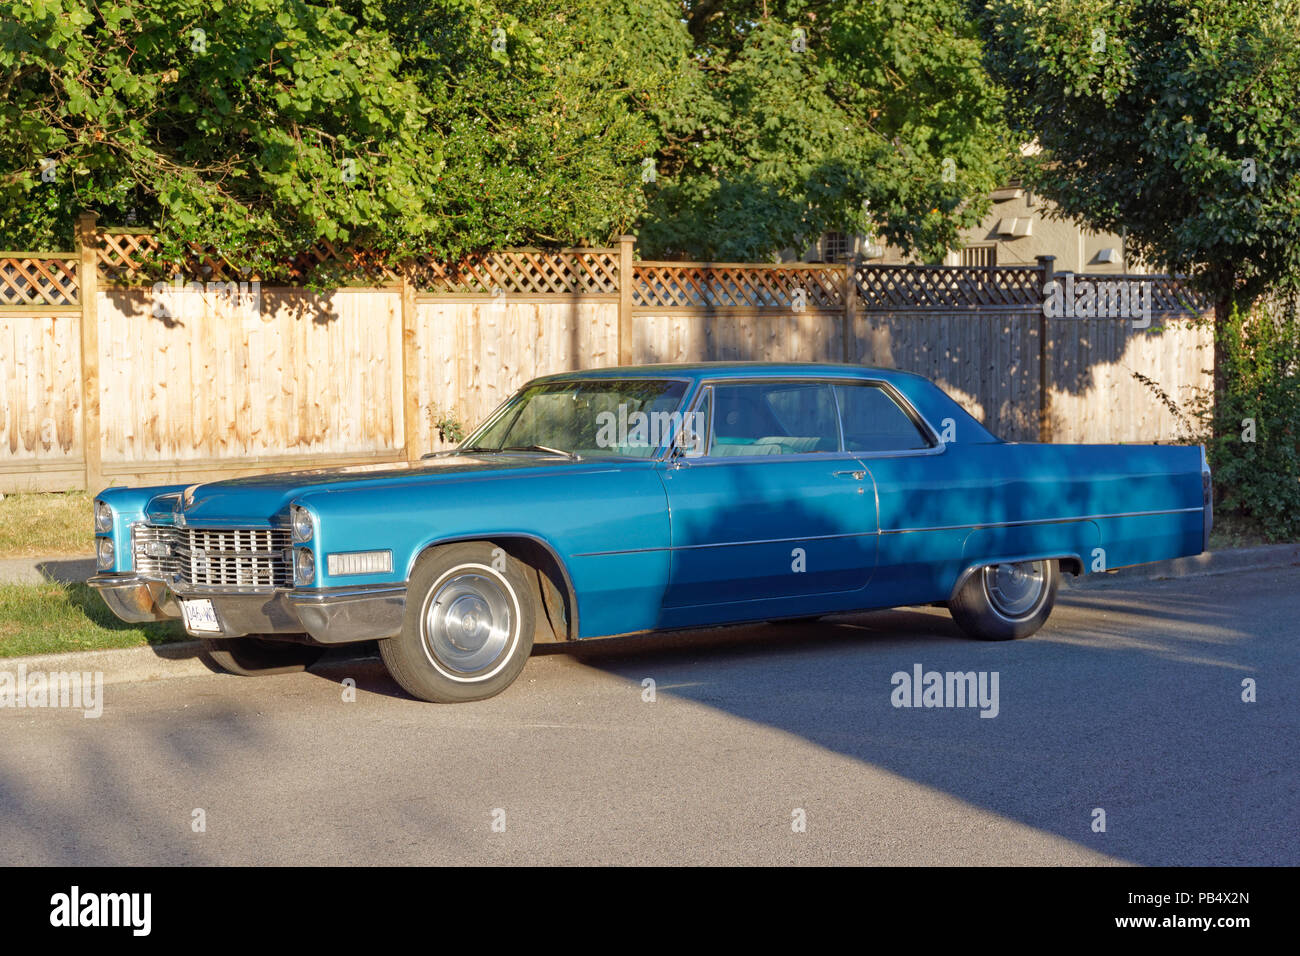 vintage-blue-1960s-cadillac-two-door-sed